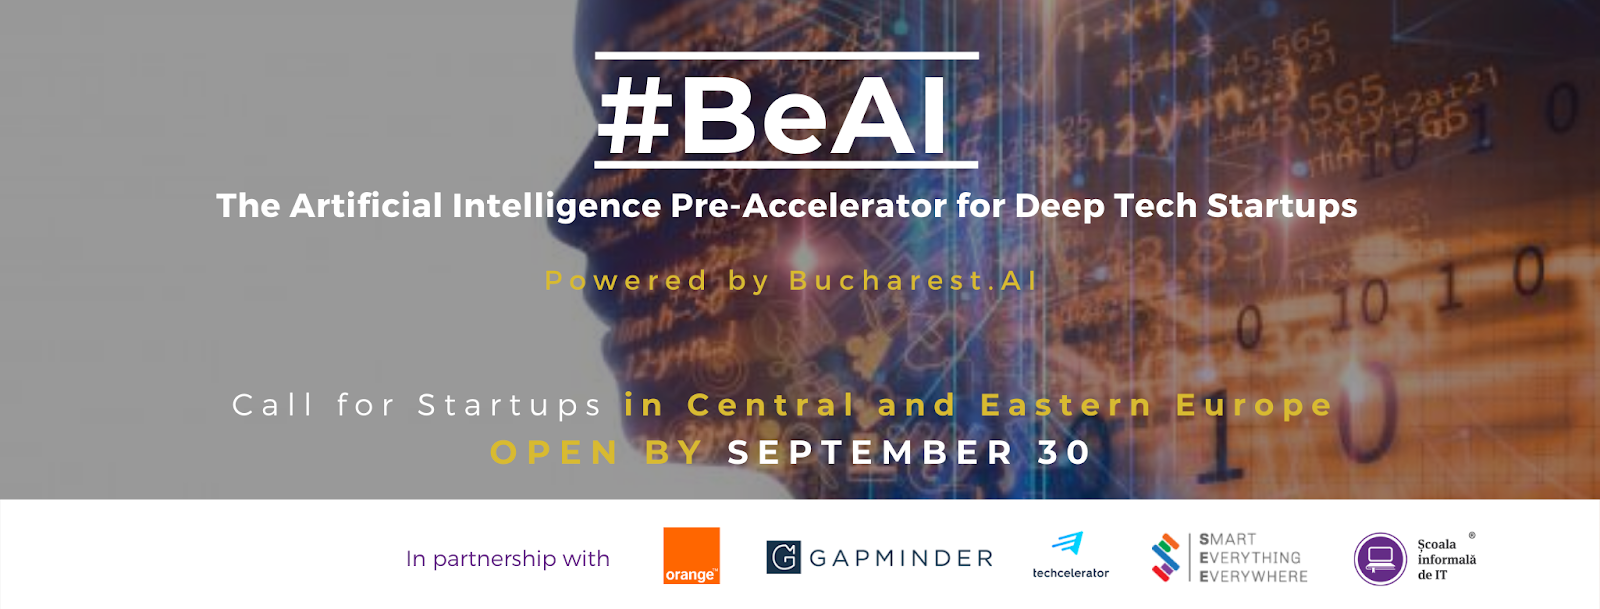 #BeAI The Artificial Intelligence Pre-Accelerator for Deep Tech Startups